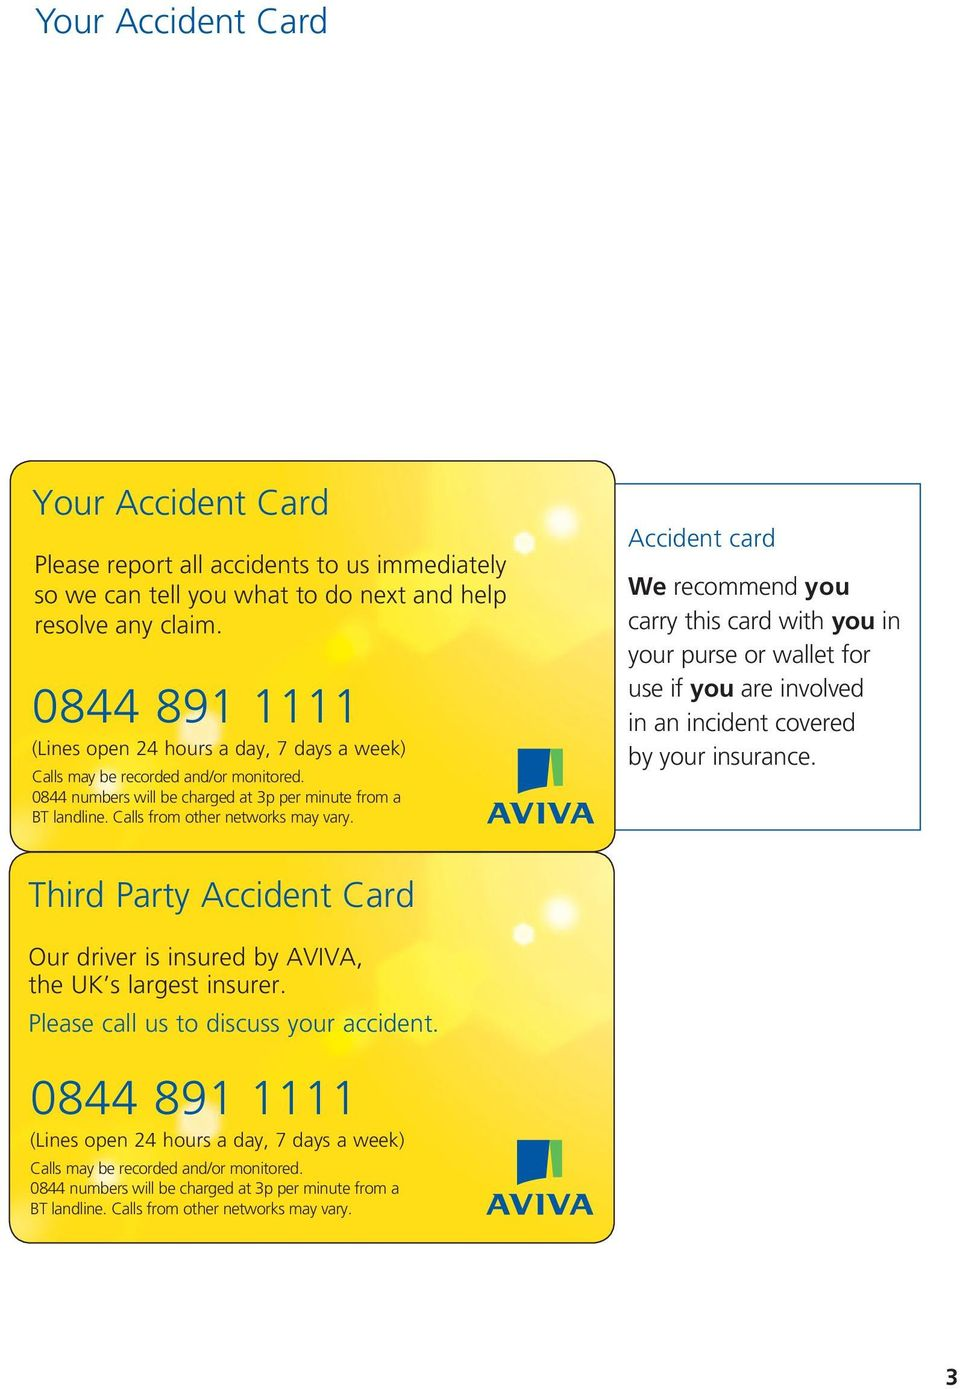 Accident card We recommend you carry this card with you in your purse or wallet for use if you are involved in an incident covered by your insurance.